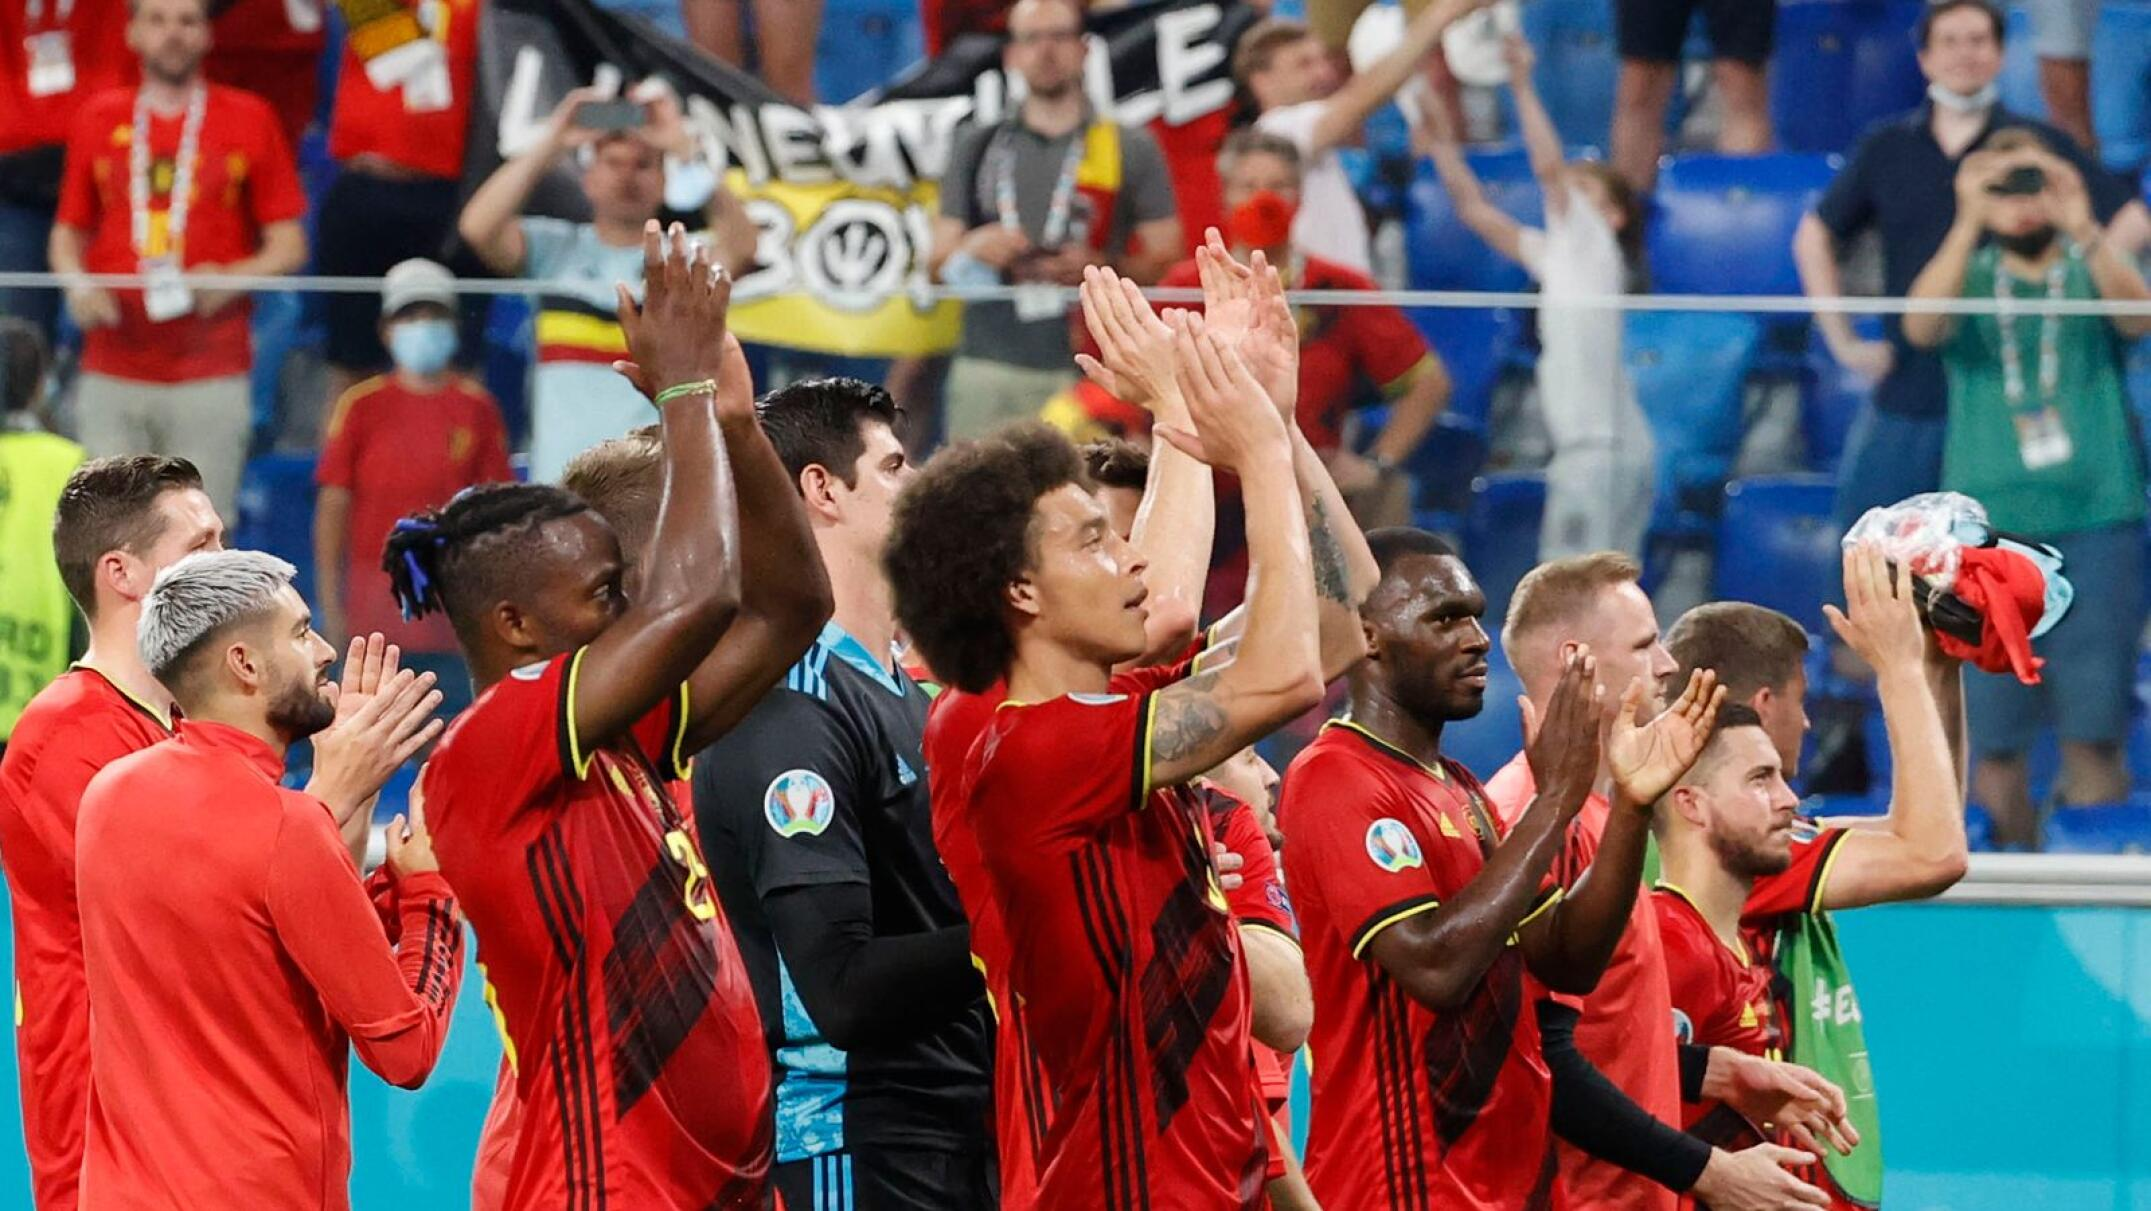 Belgium players celebrate at the end of their Euro 2020 match against Finland at Saint Petersburg Stadium in Russia